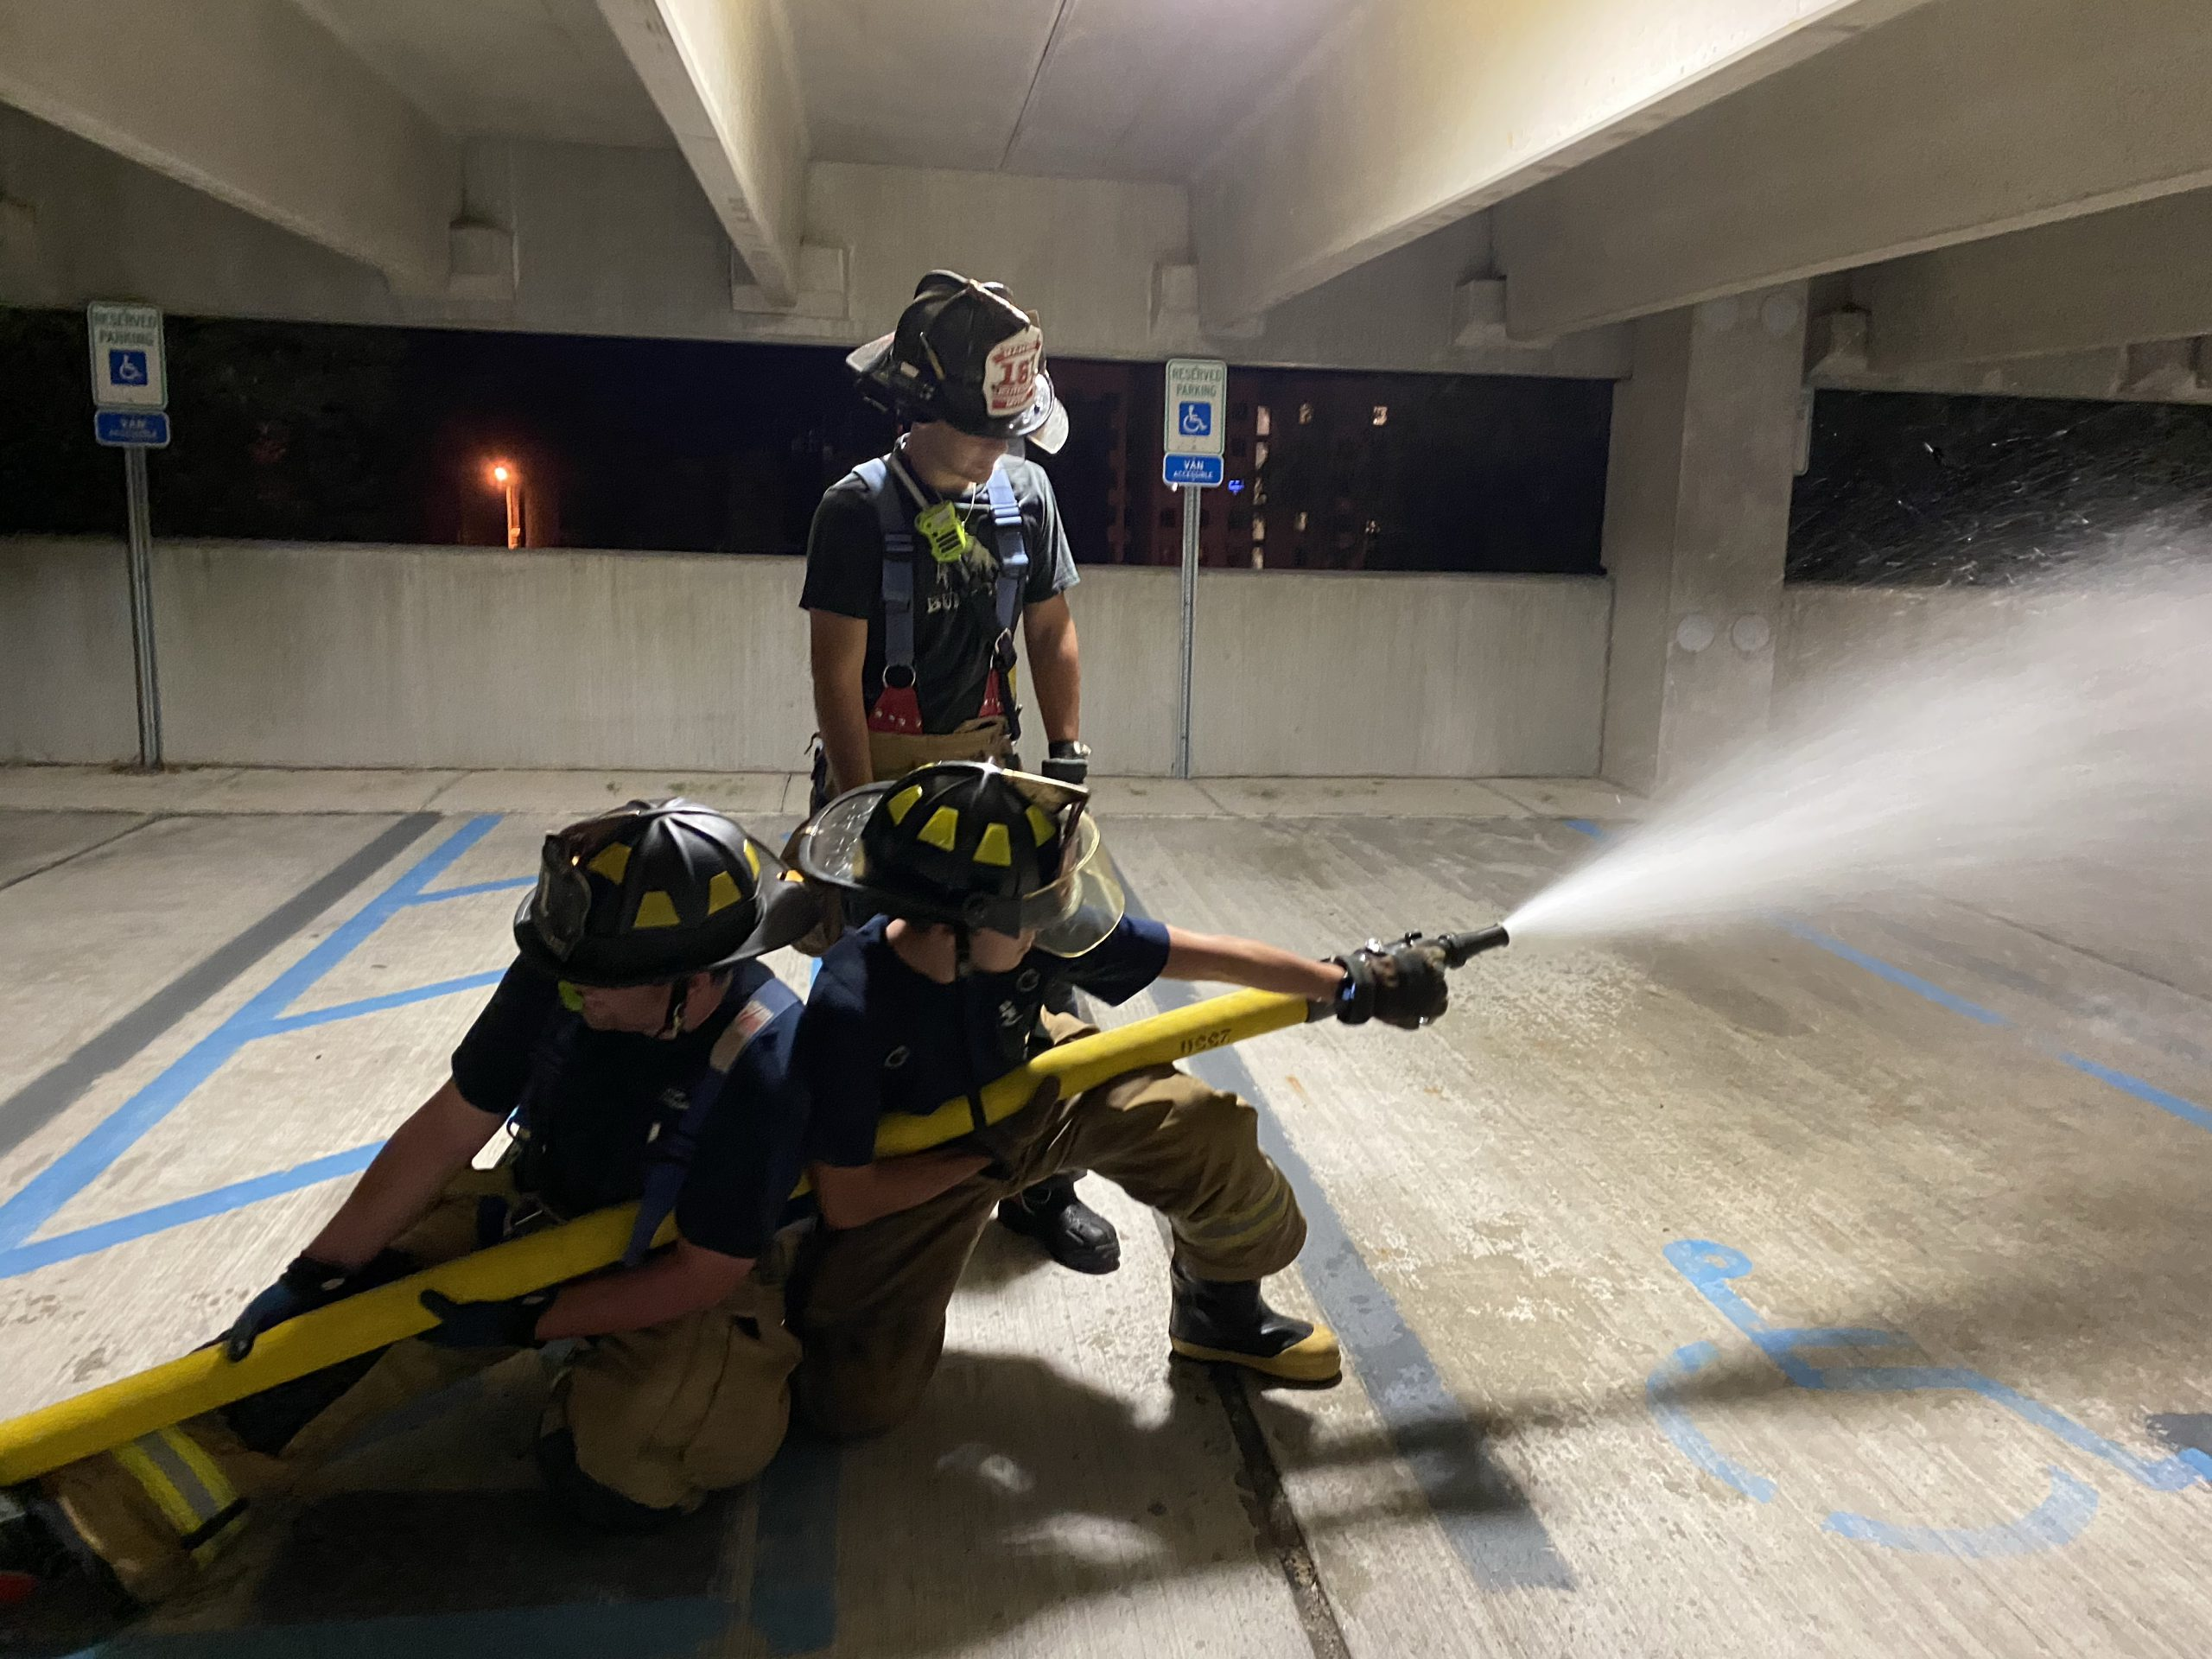 Drill Night: Standpipe Operations